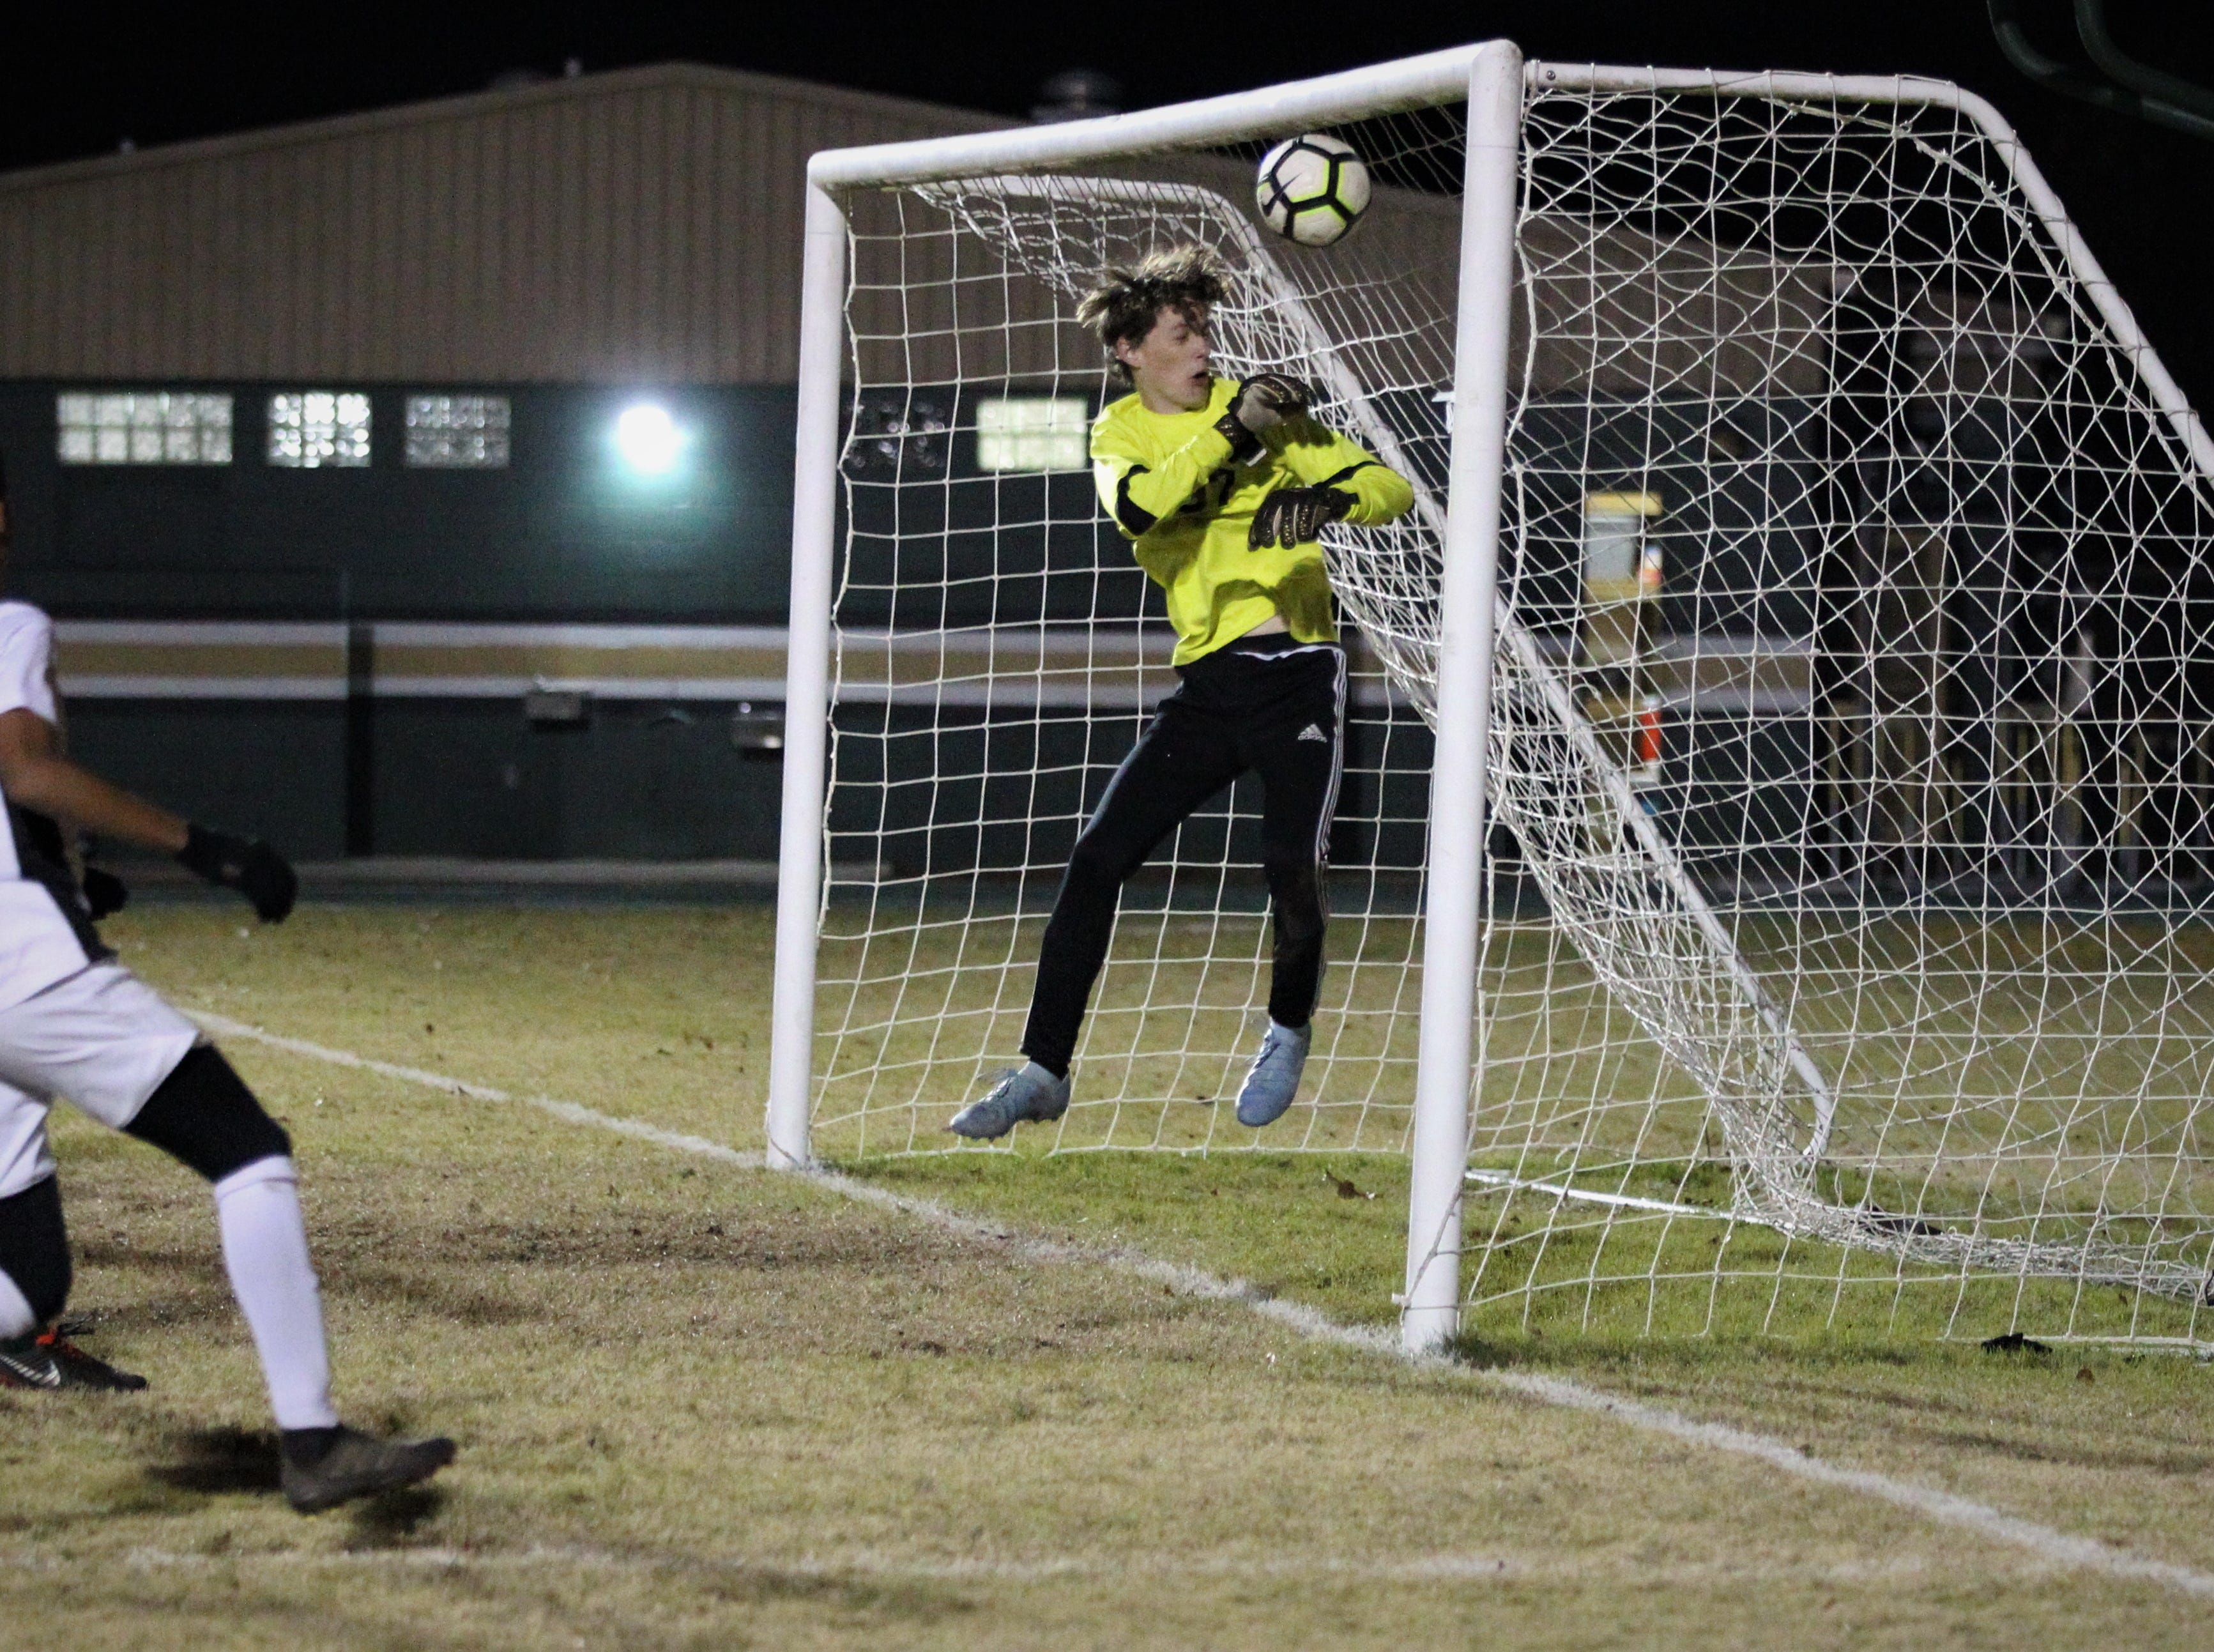 Lincoln keeper Aiden Reiding watches as a free kick from Chiles' Patrick O'Sullivan hits the post and bounces out as Chiles' boys soccer team beat Lincoln 1-0 in a District 2-4A semifinal on Jan. 30, 2019.